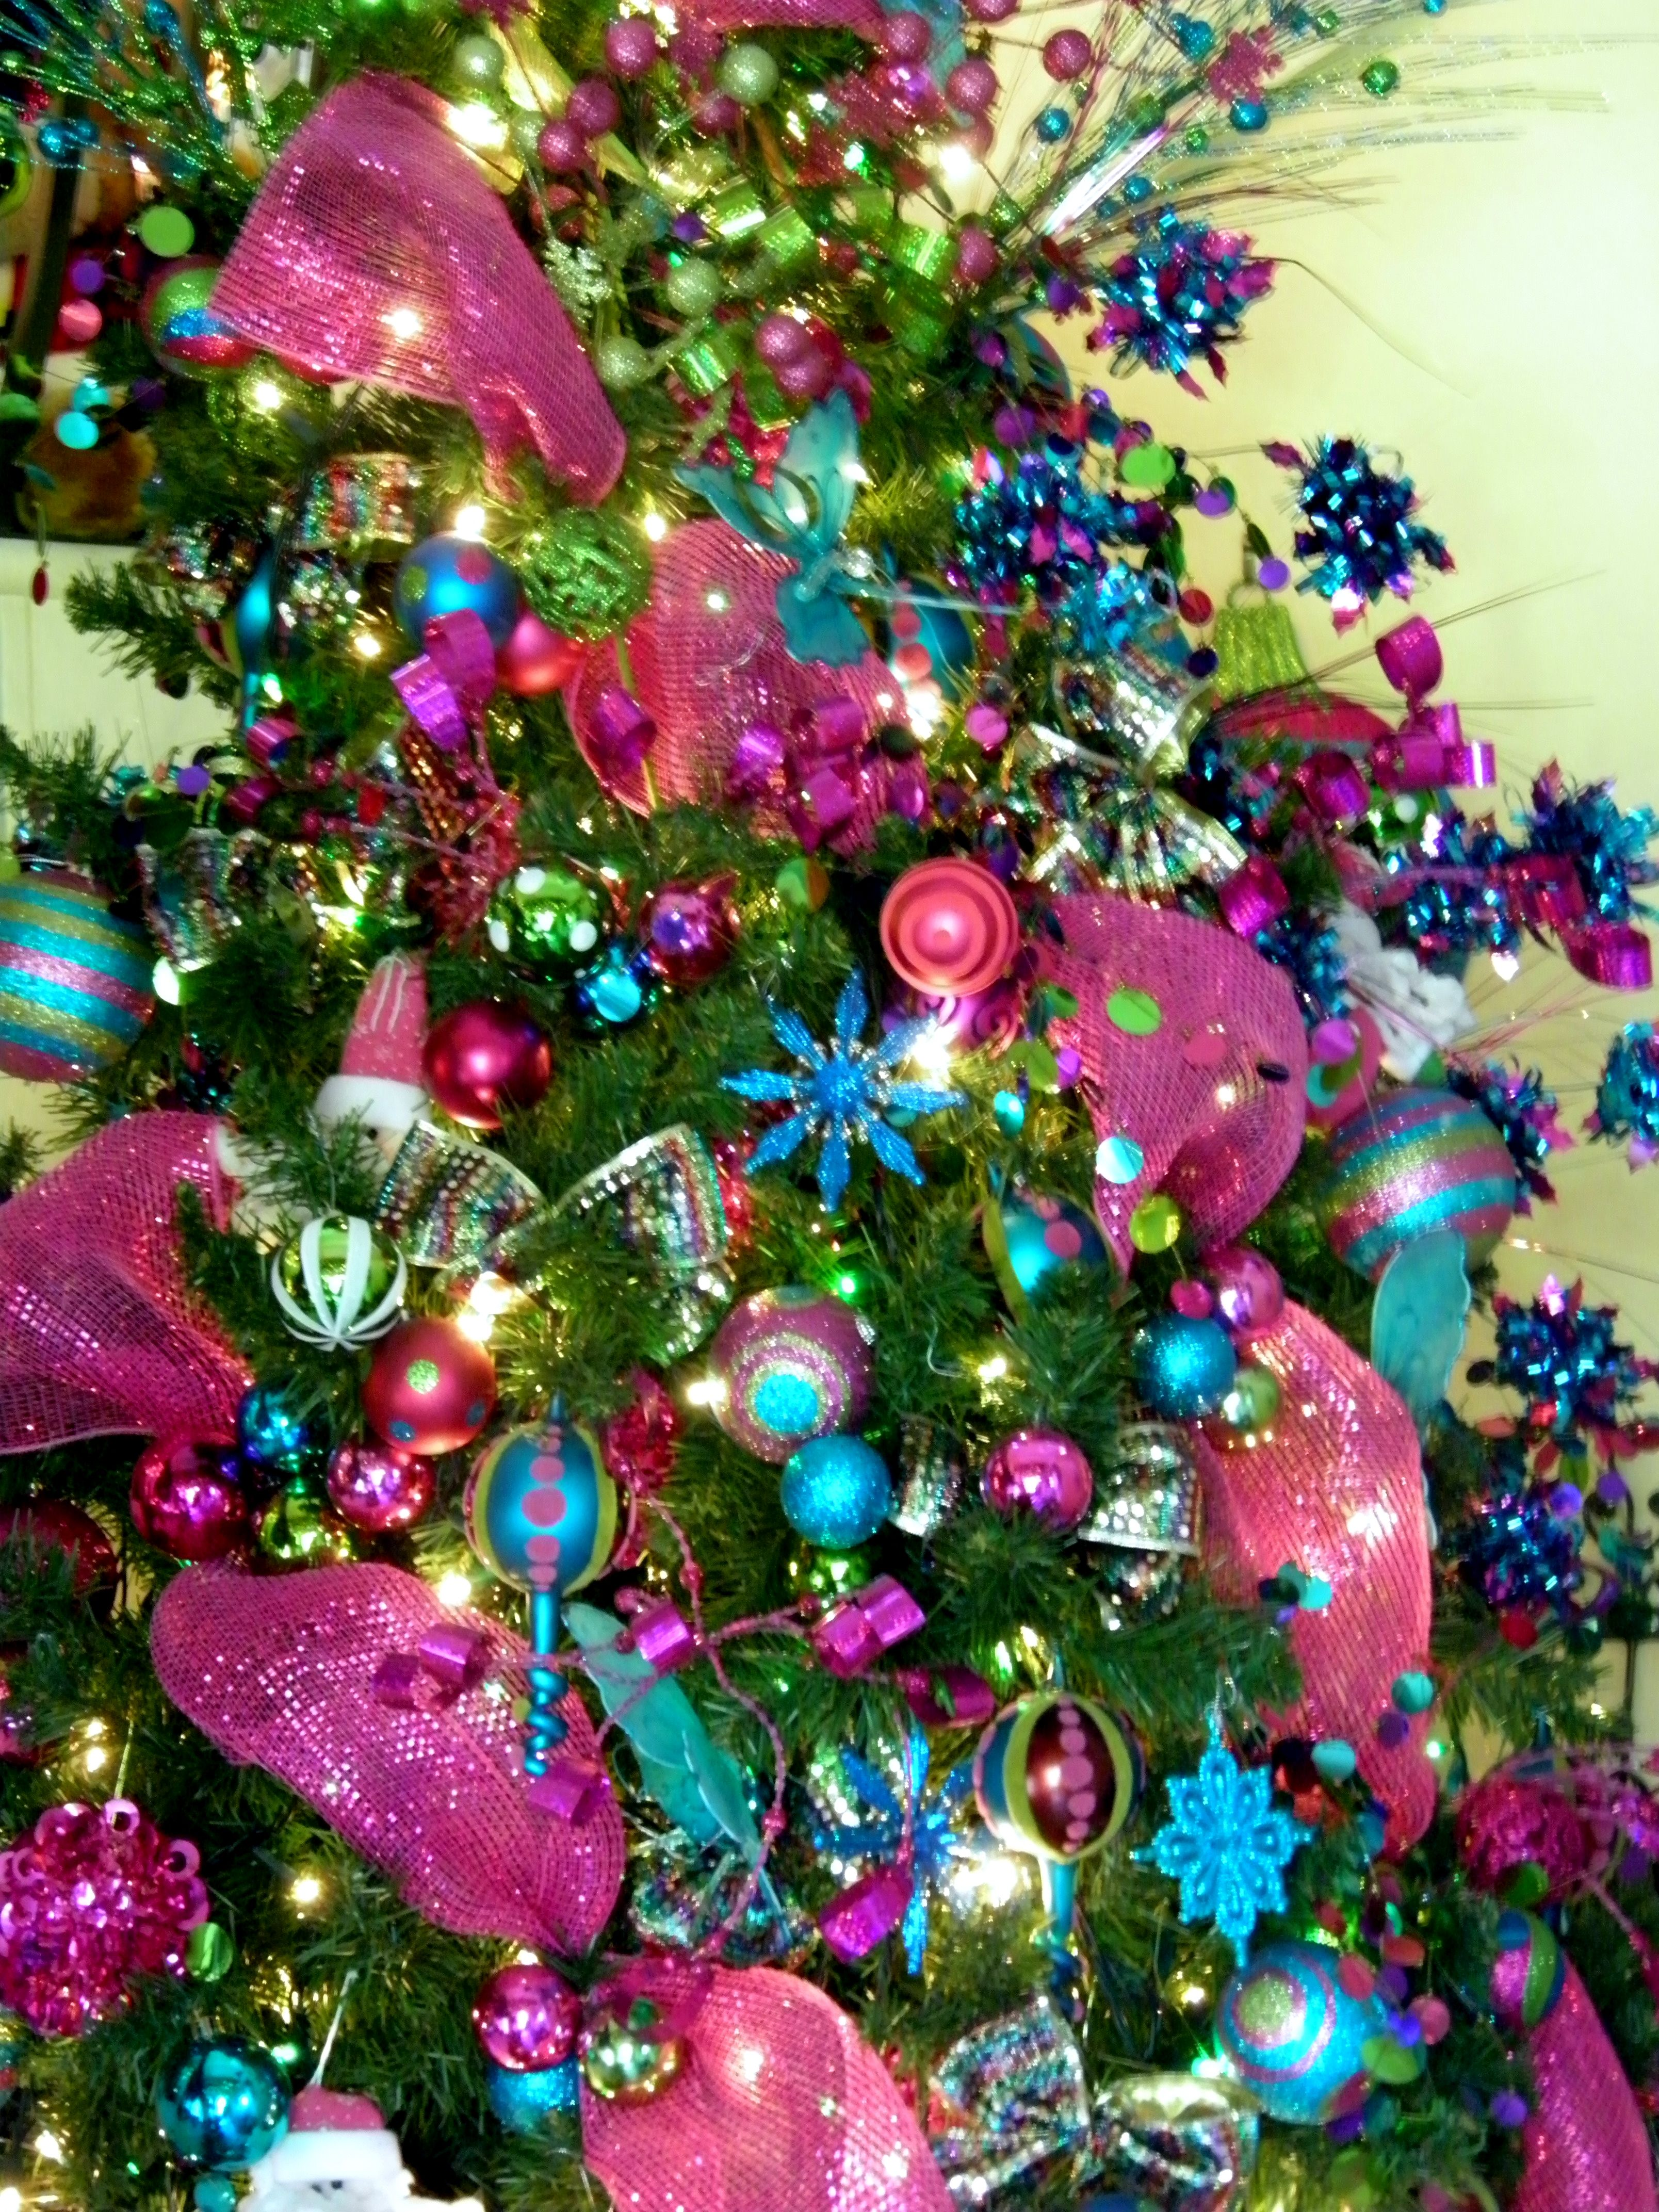 Hutt Christmas Lights Nz Purple Christmas Tree Turquoise Christmas Tree Turquoise Christmas